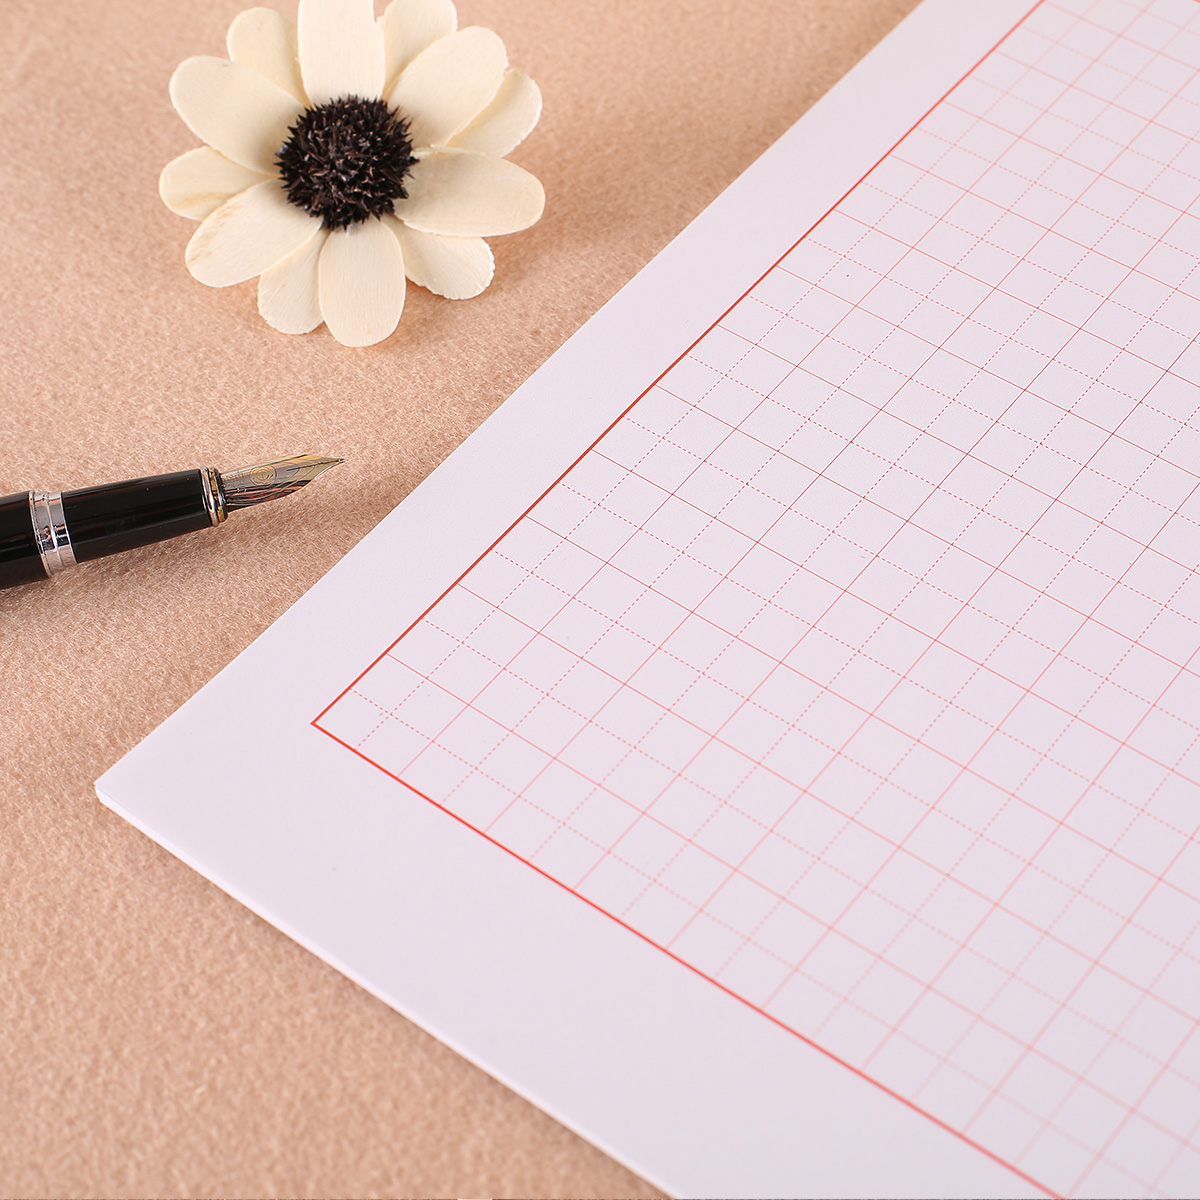 Horizontal grid swastika pygmy word lattice entry pen copybook regular script running script xing kai calligraphy paper to practice this exercise book